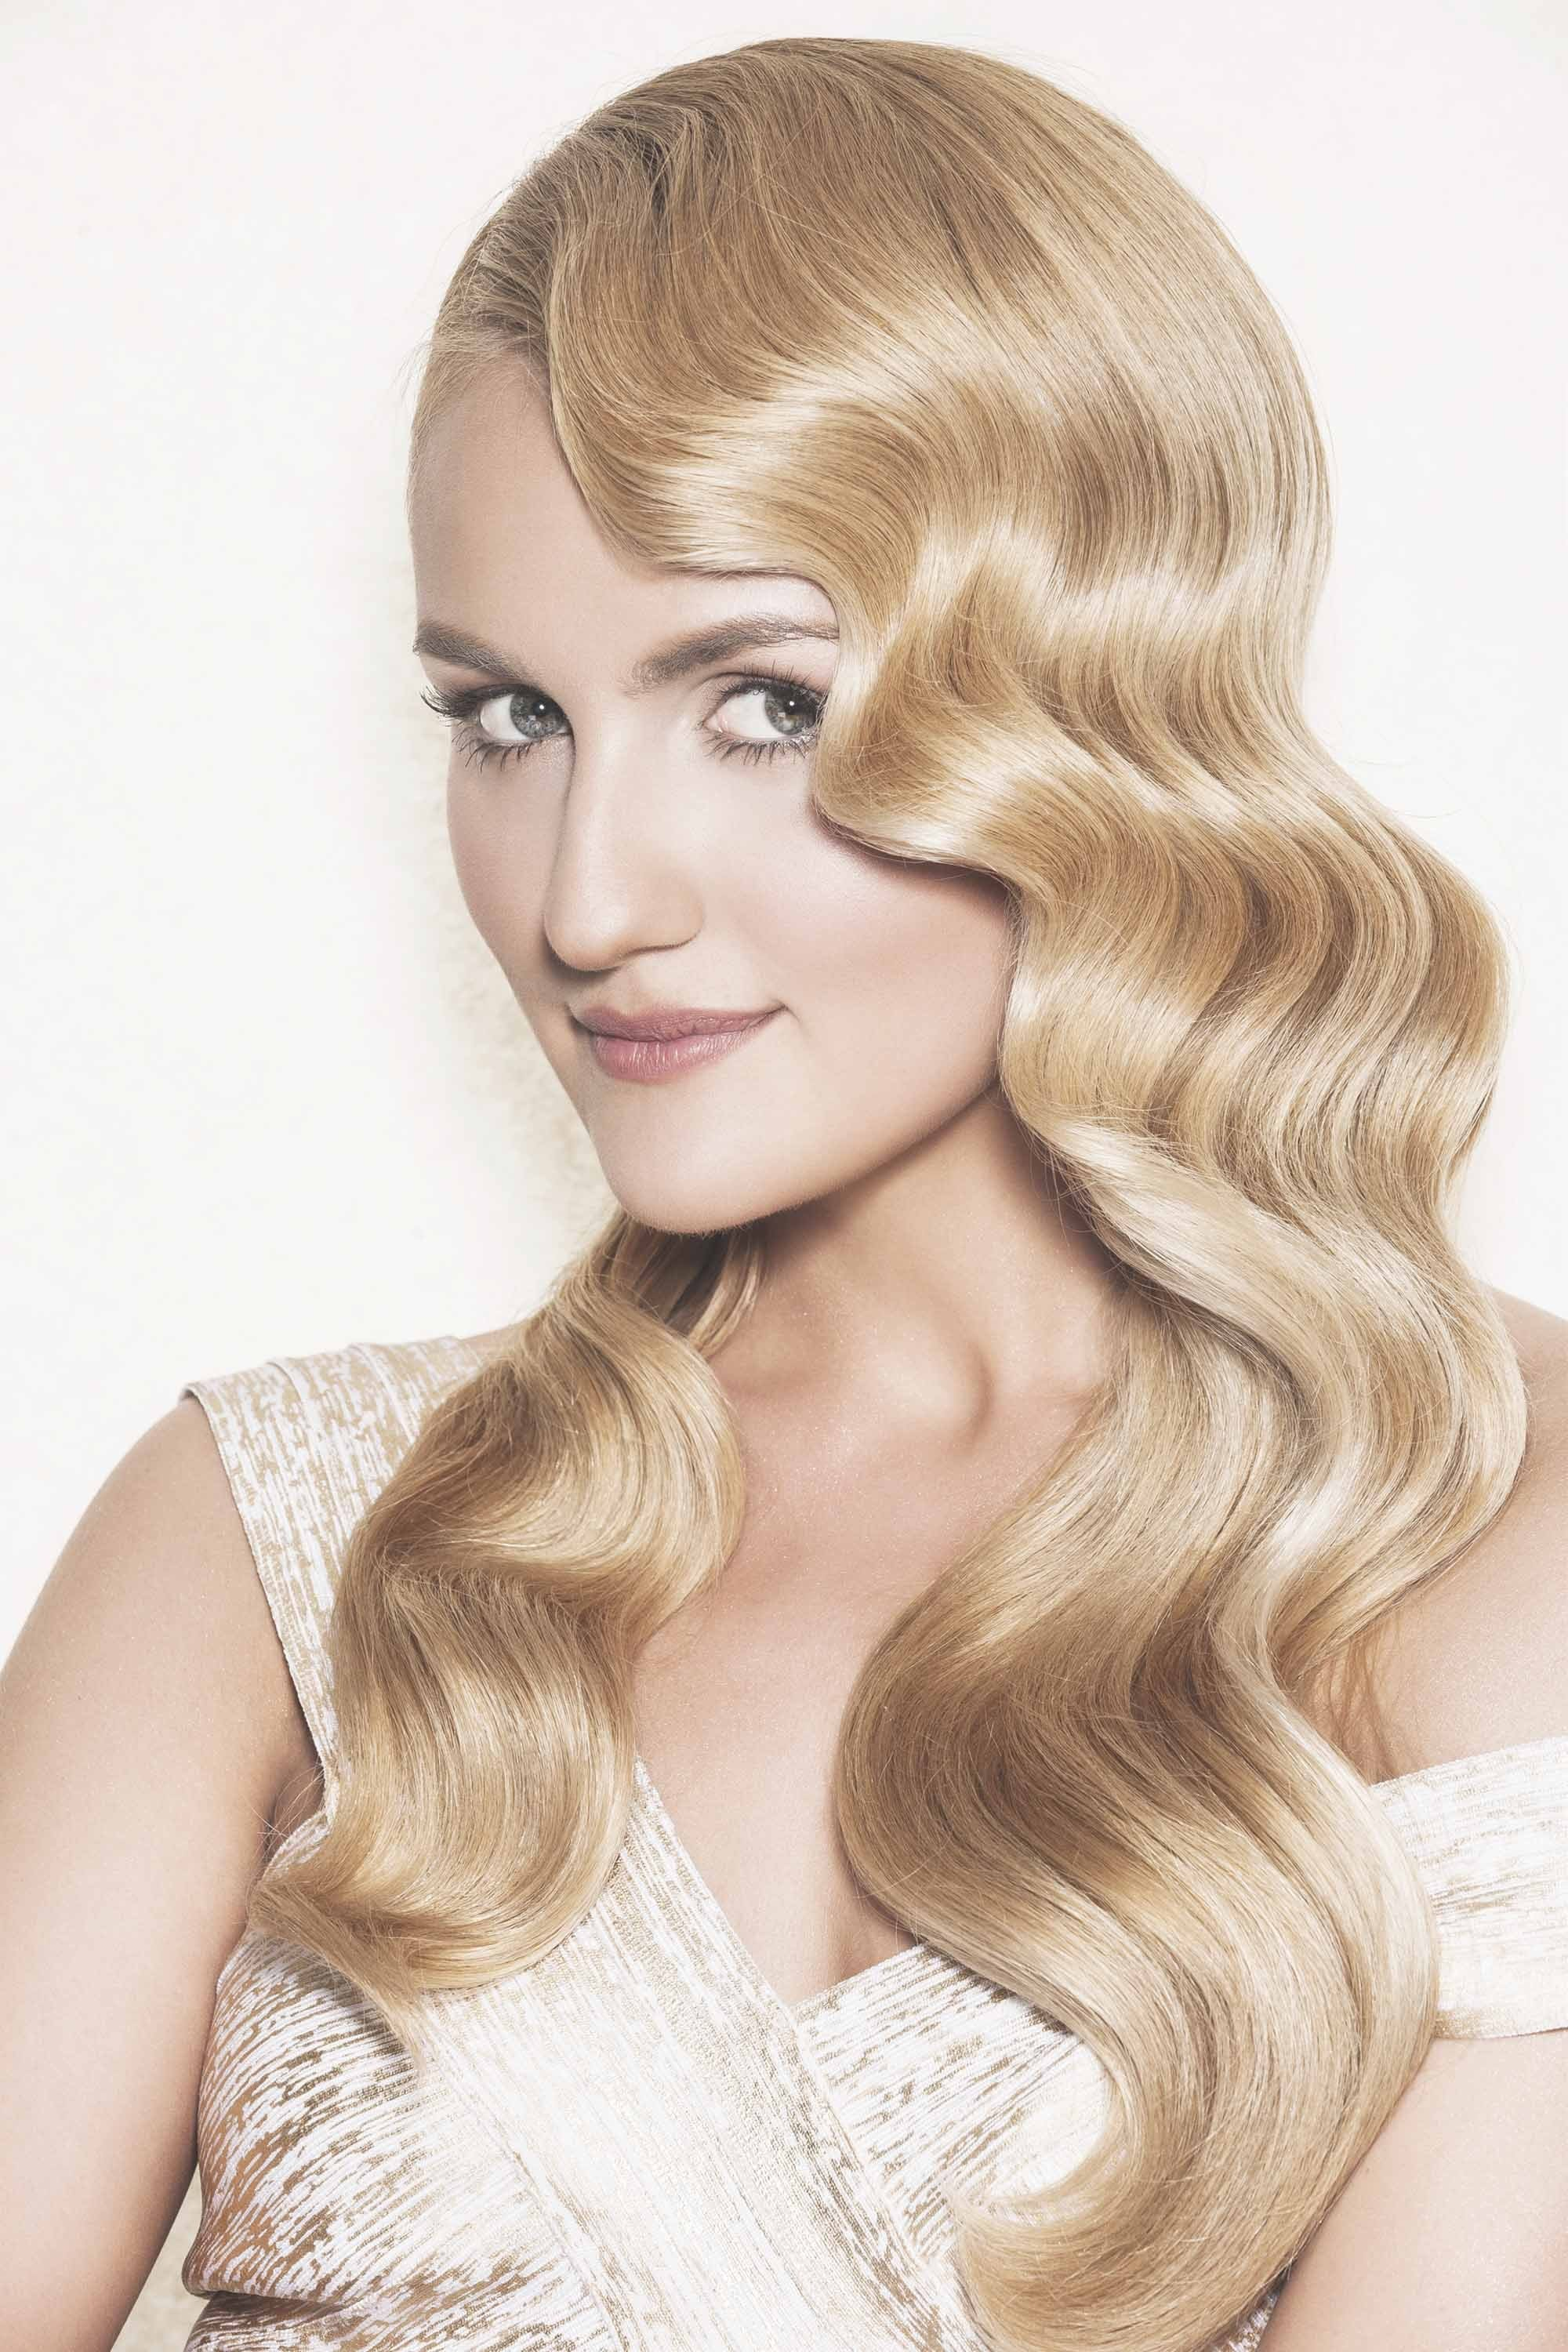 The Best 11 Great Gatsby Inspired Hair Ideas For Halloween And Pictures